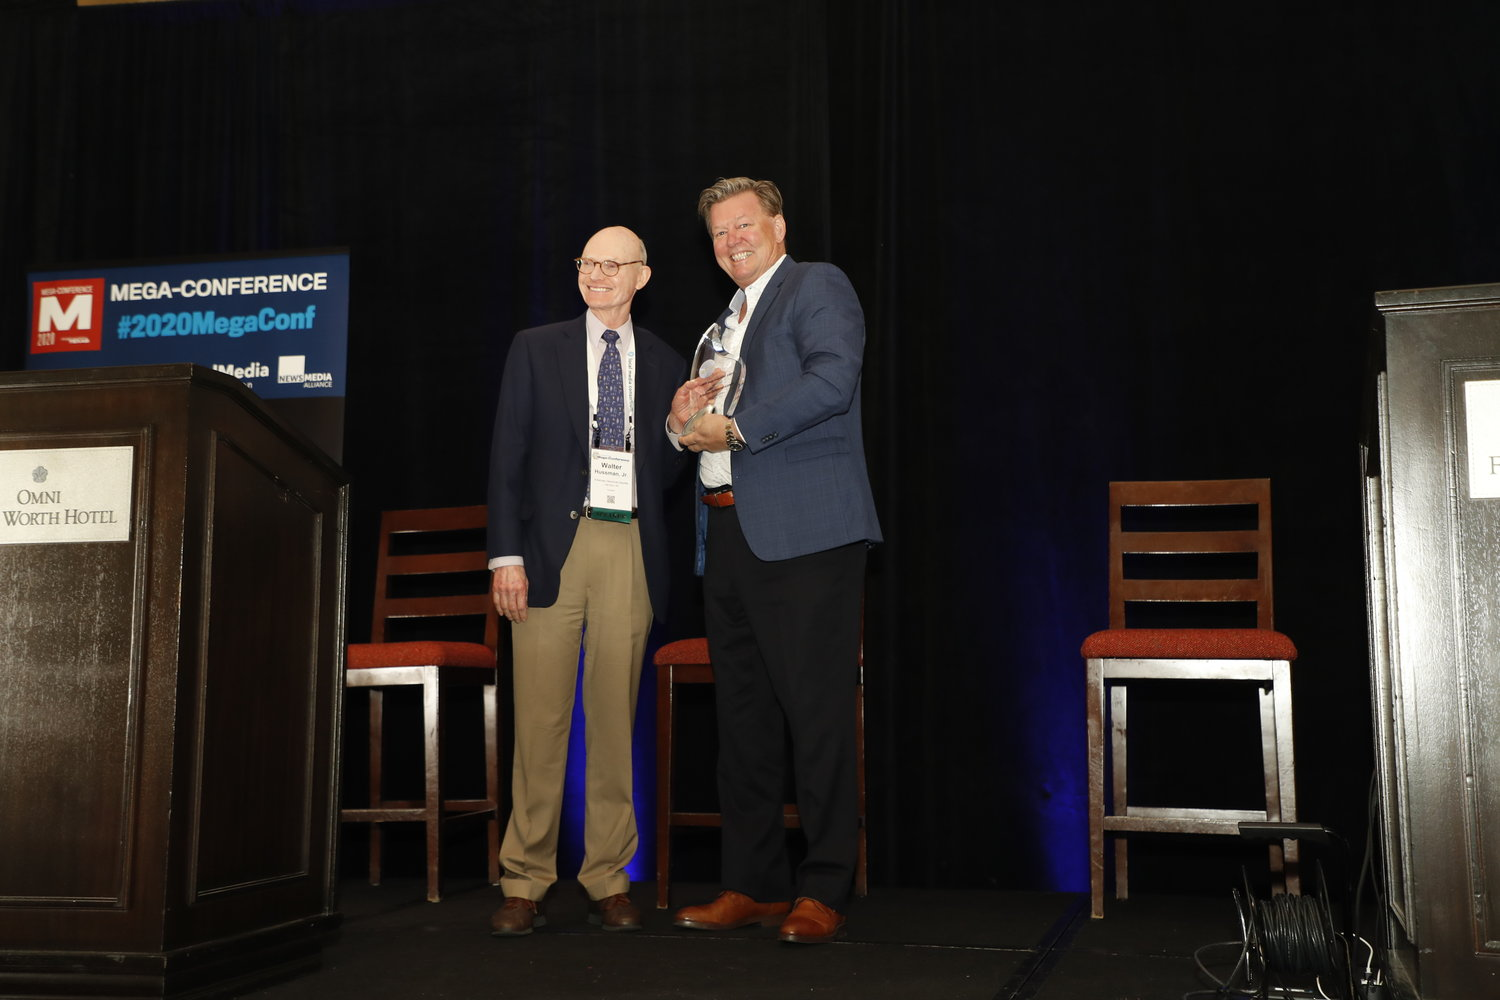 Dave Kennedy, of the Honolulu Star-Advertiser, presents Walter E. Hussman Jr., of the Arkansas Democrat-Gazette, with the 2020 Mega-Innovation Award. (Photo by Bob Booth)